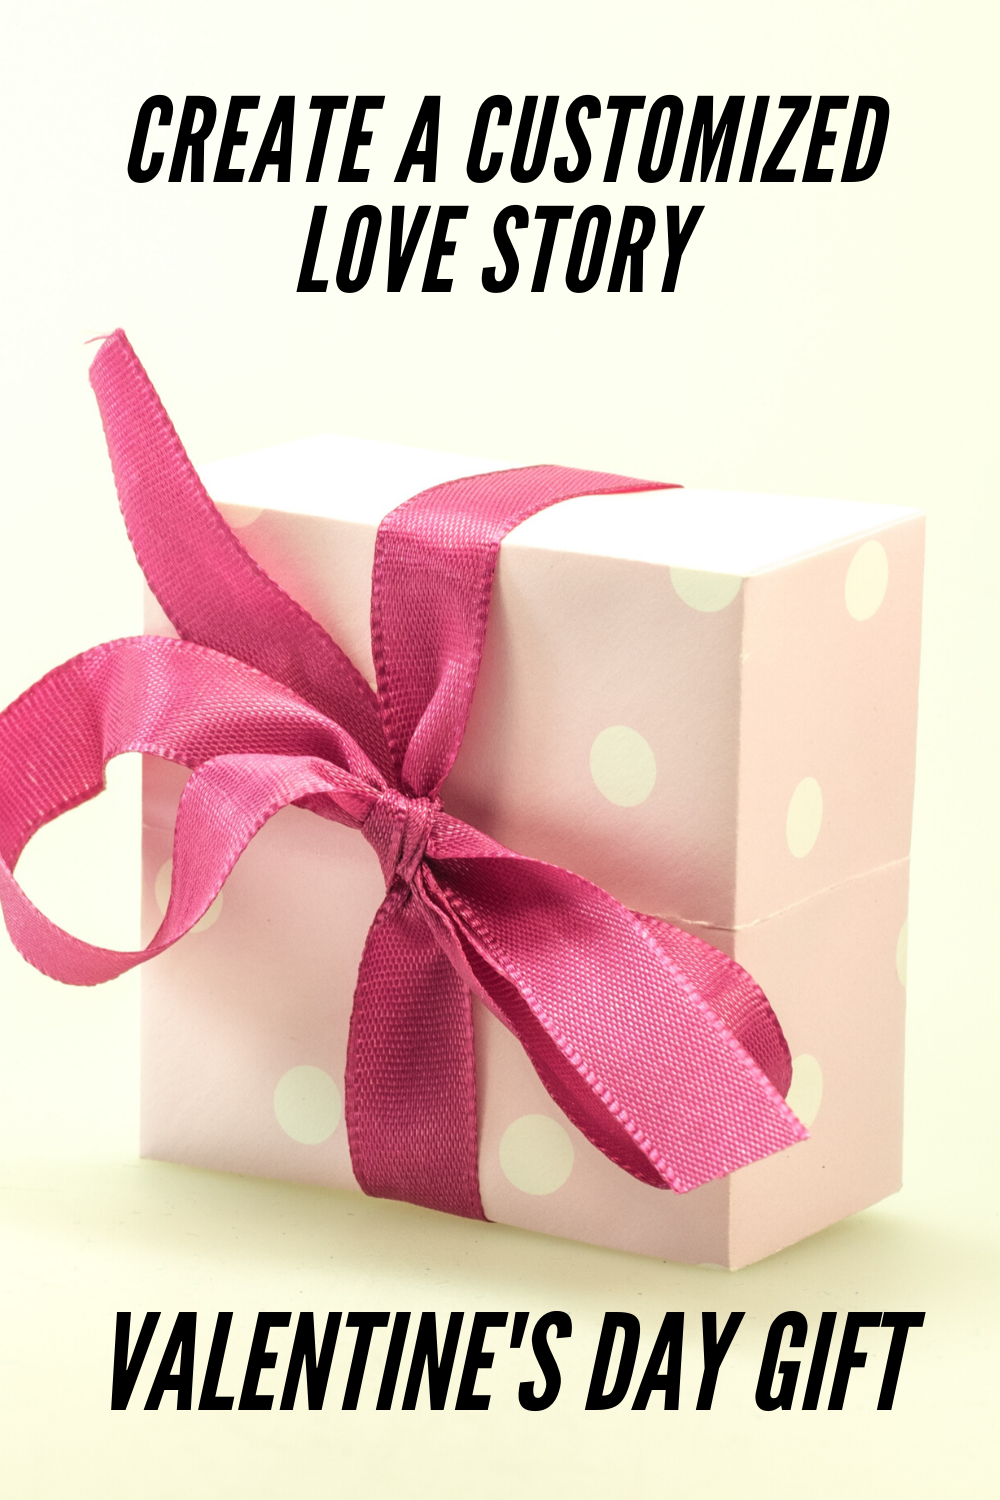 How To Create A Love Book Great Valentine S Day Gift Great Valentines Day Gifts Valentine Gifts Valentines Day Gifts For Friends